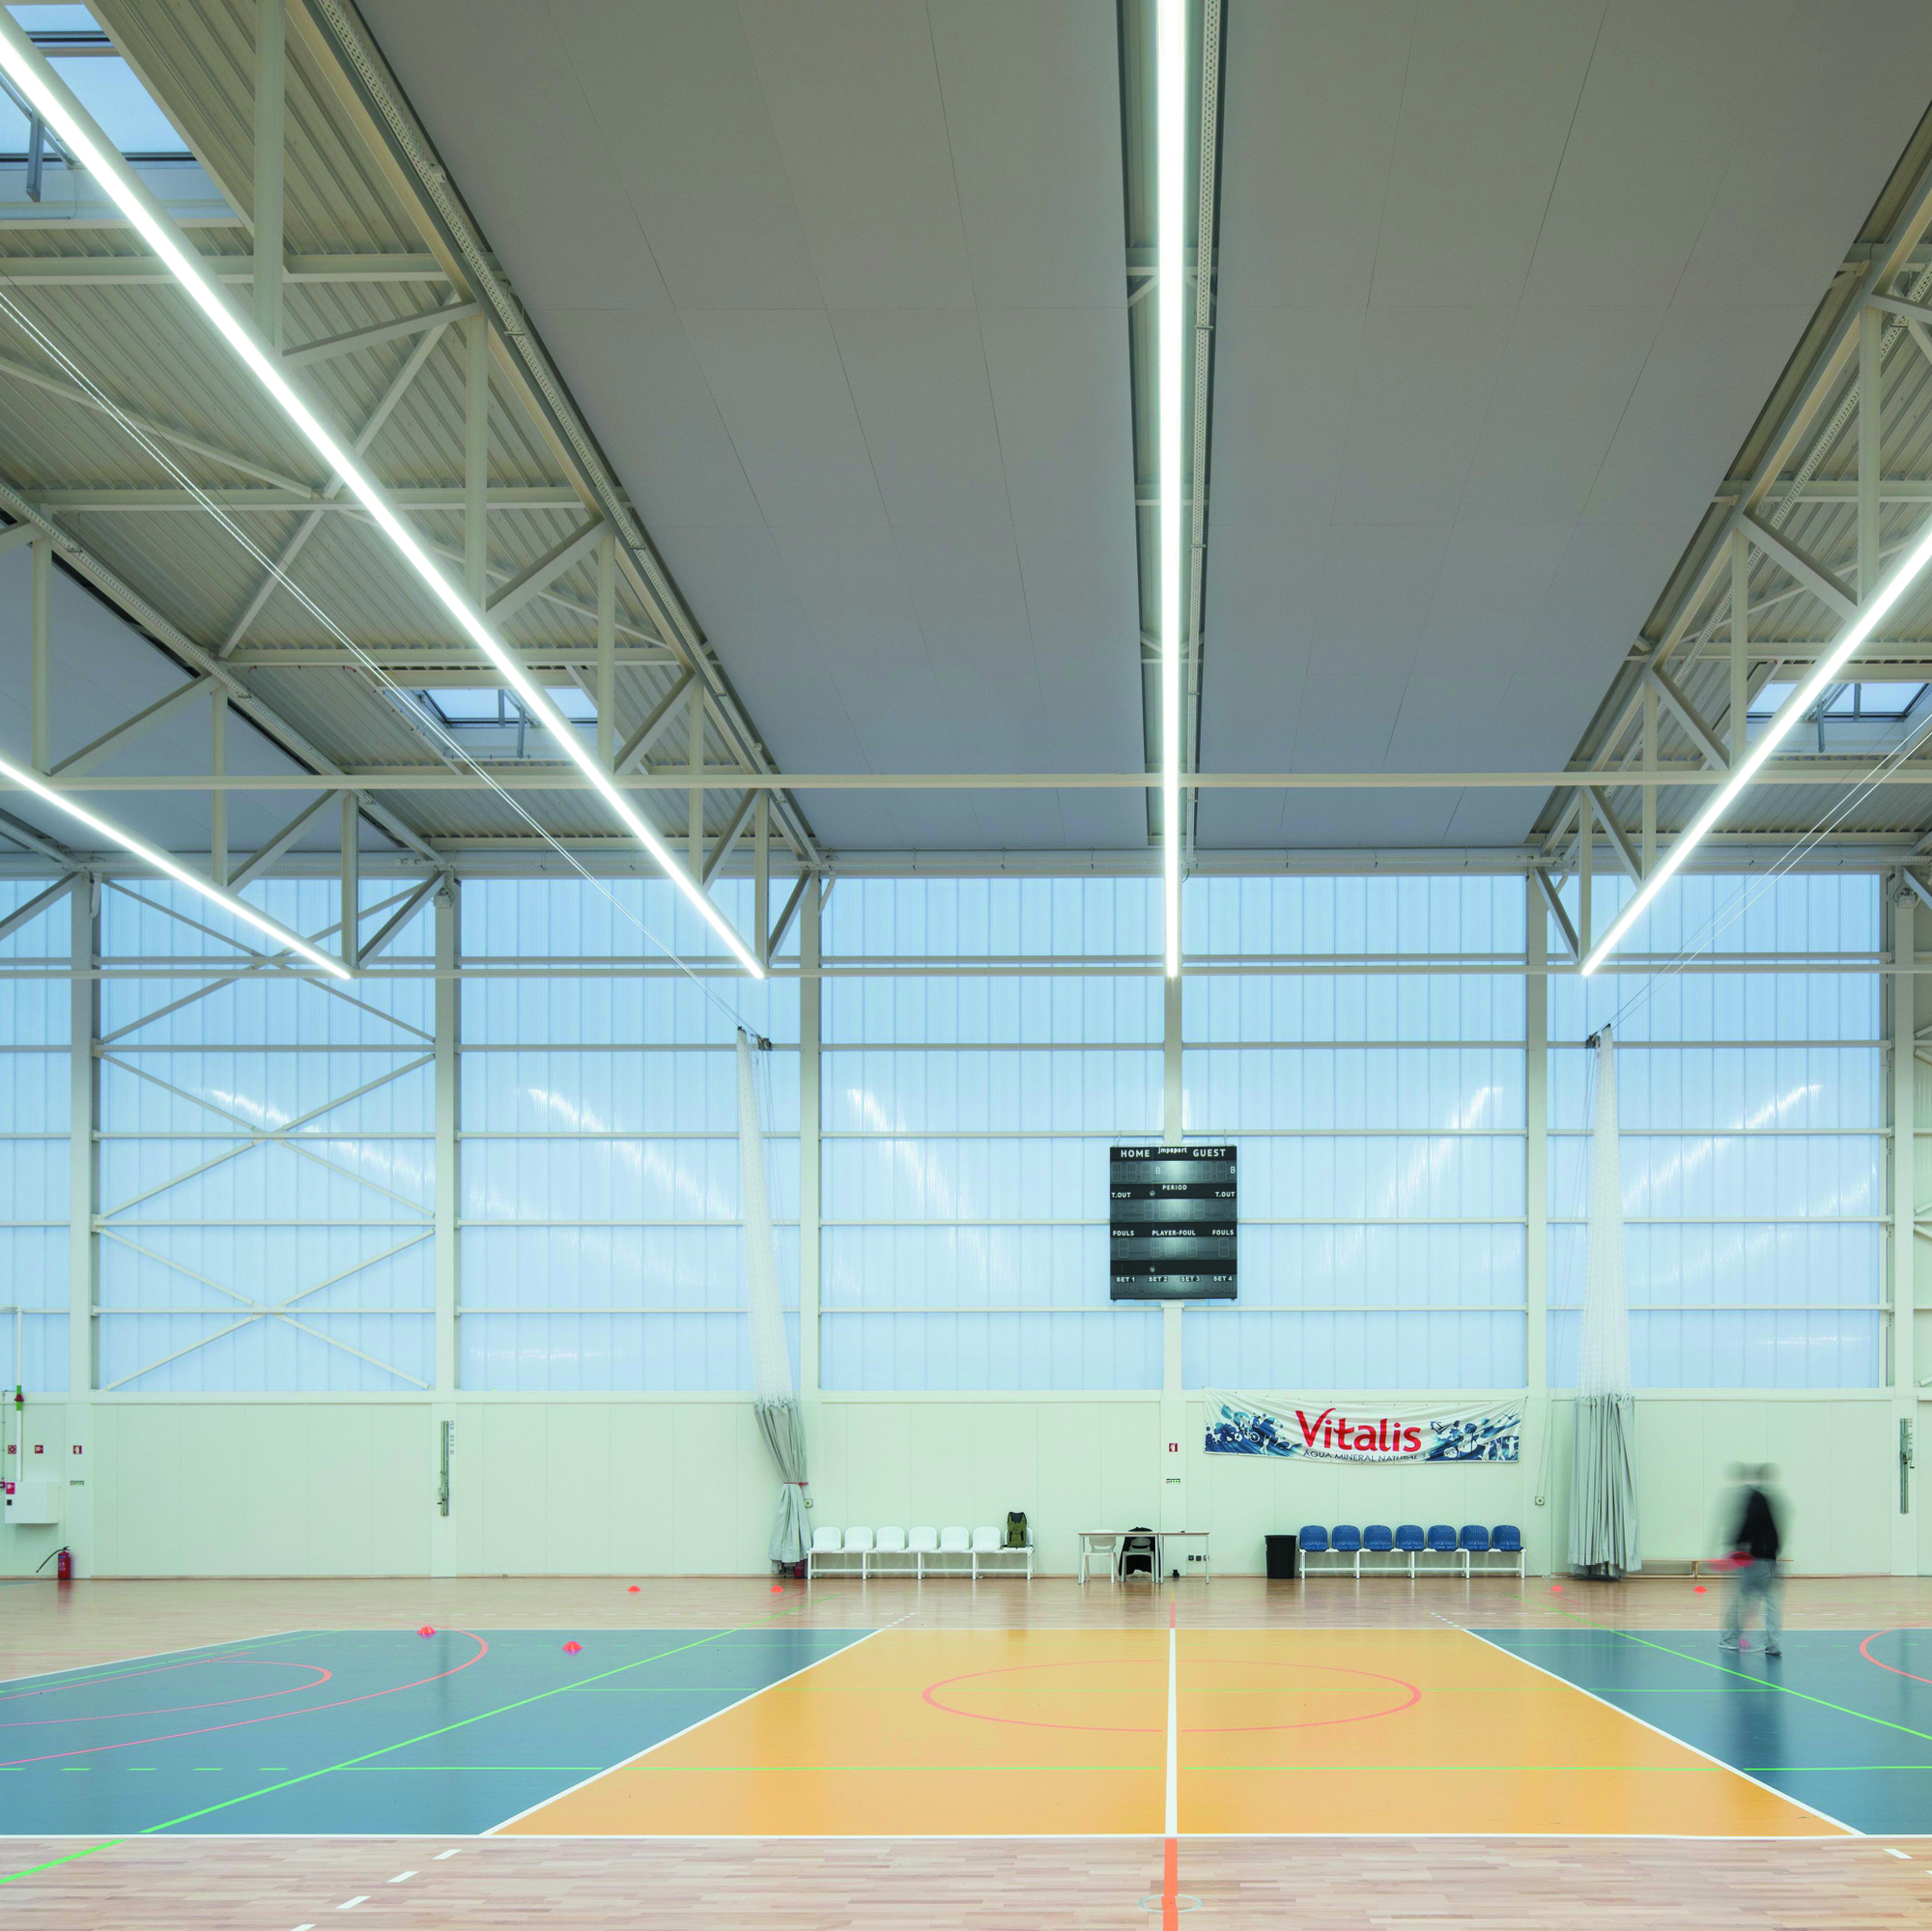 Elfanor Sports Centre, Matosinhos, Portugal - Image 2